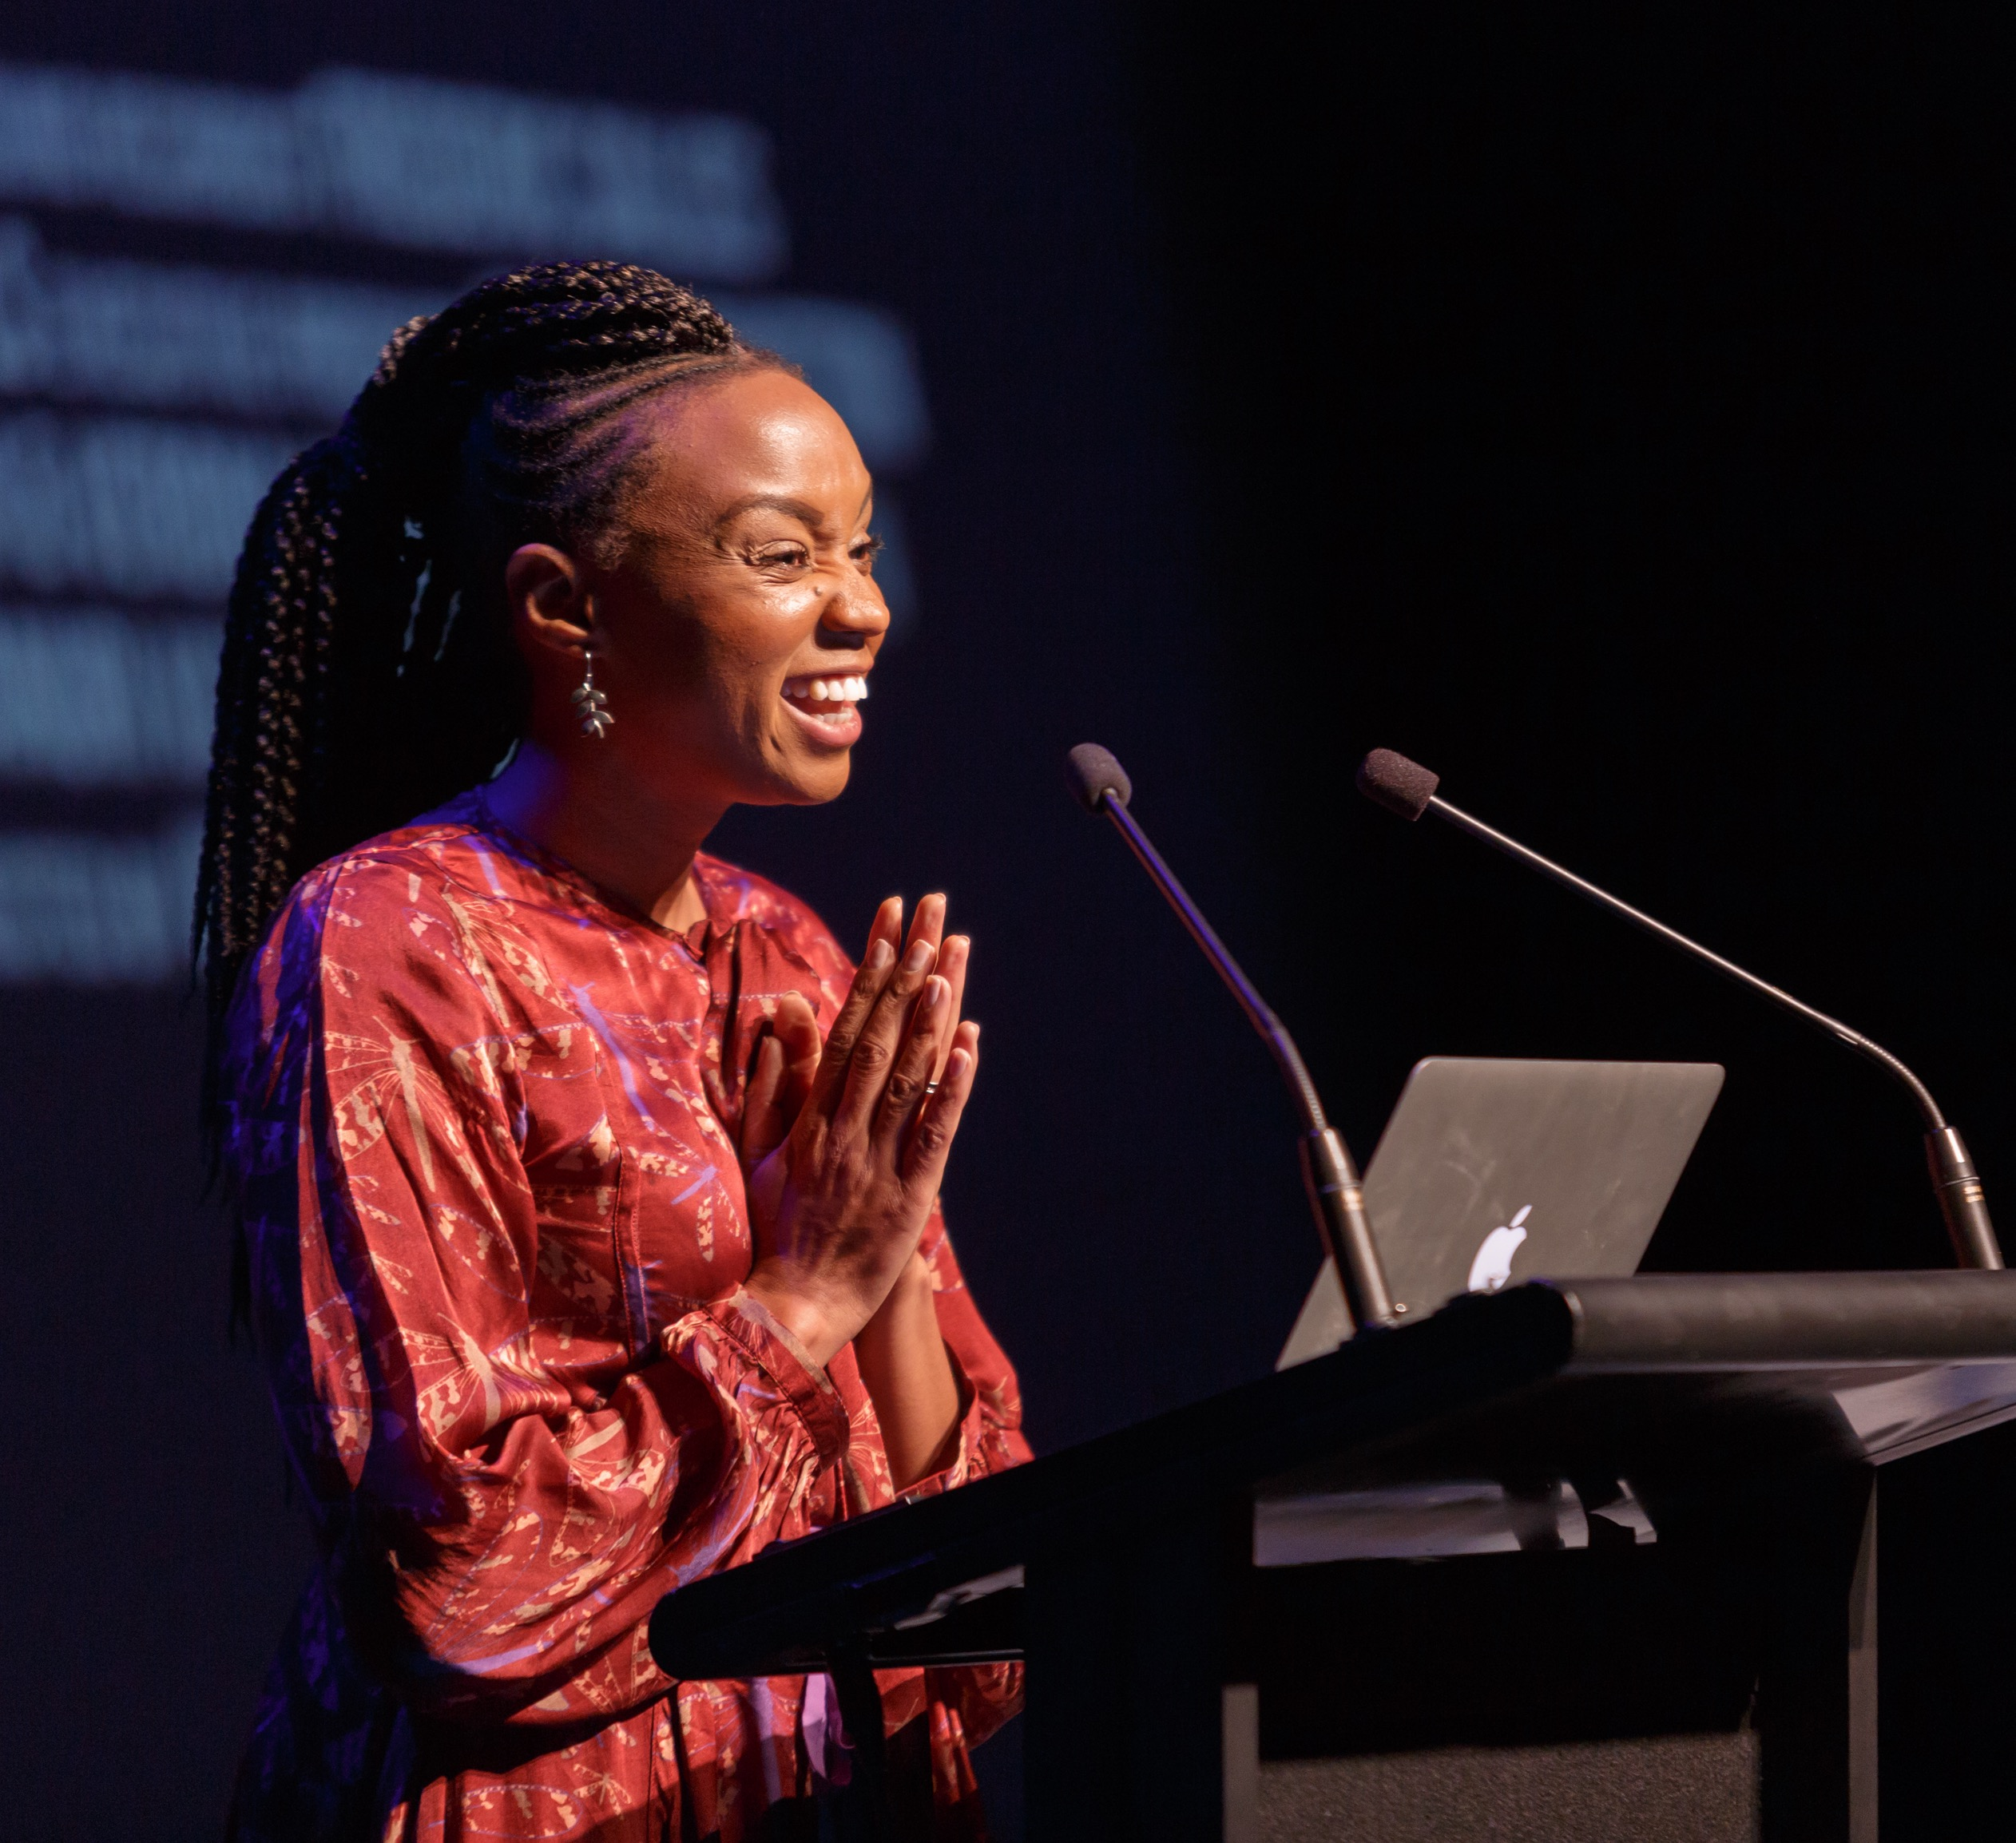 Big Screen Symposium 2018: The Zeitgeist of Joy with Wanuri Kahiu - Keynote Address